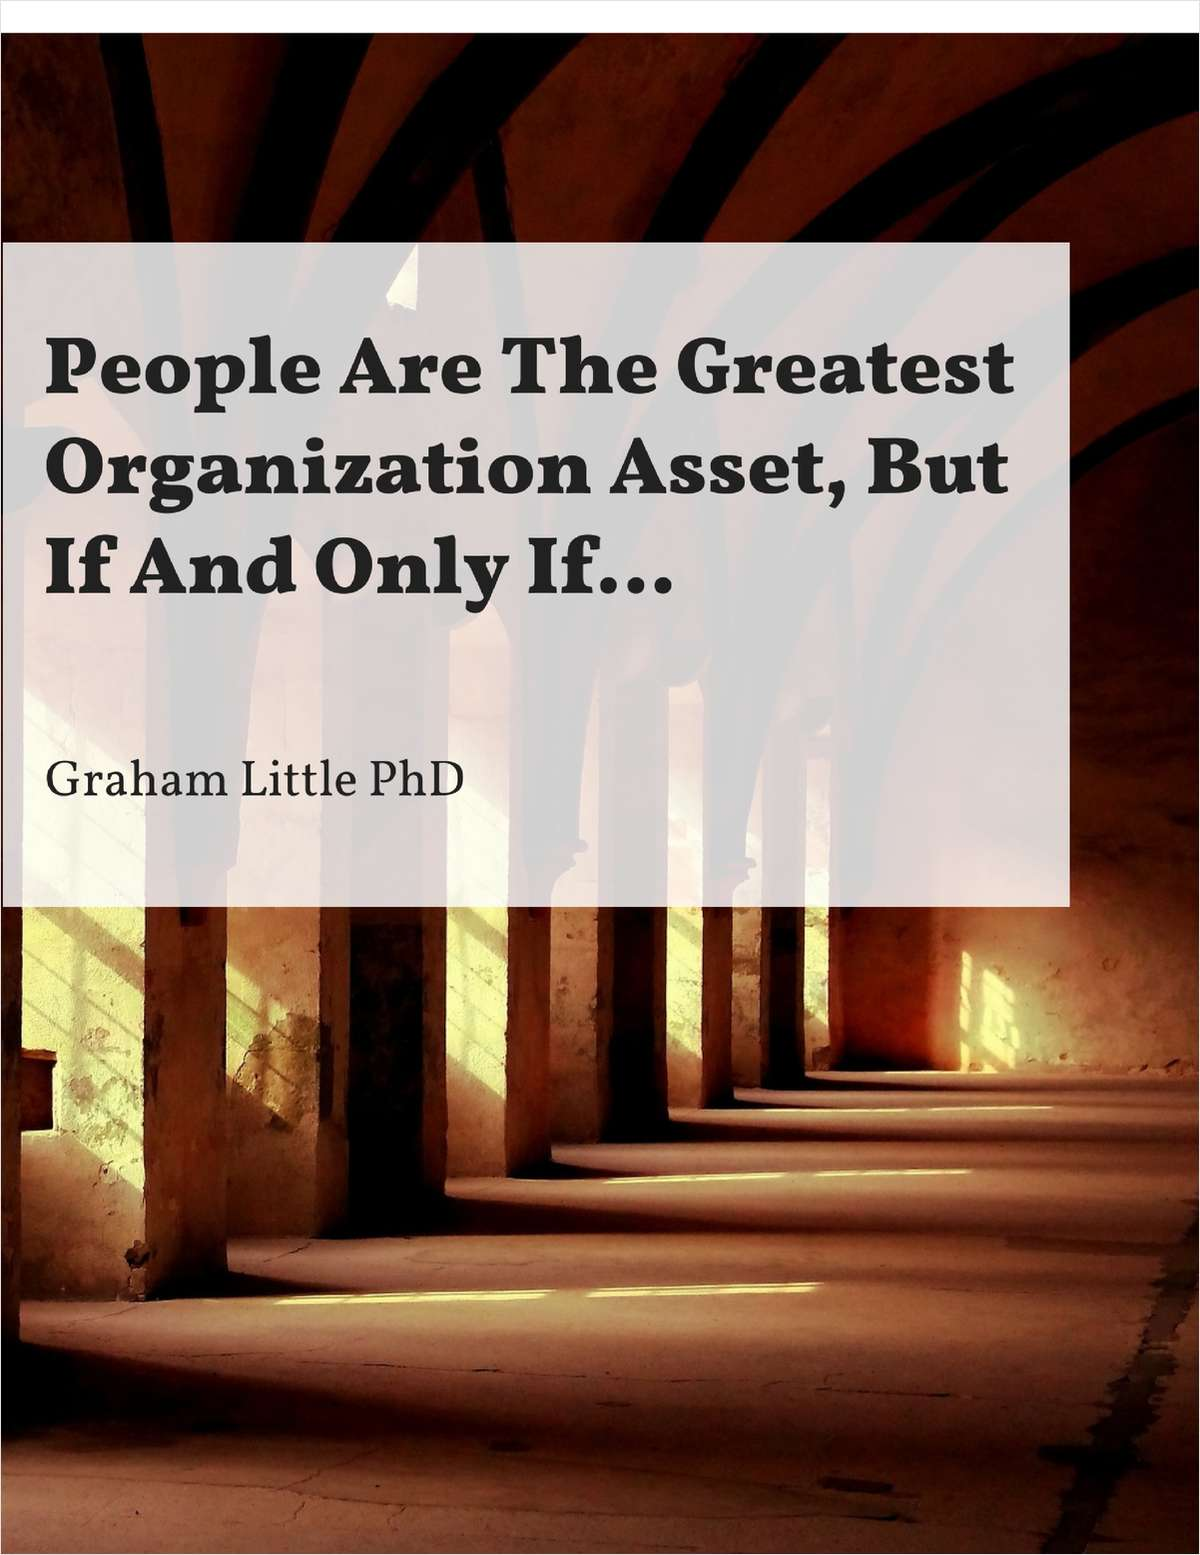 People Are The Greatest Organization Asset, But If And Only If